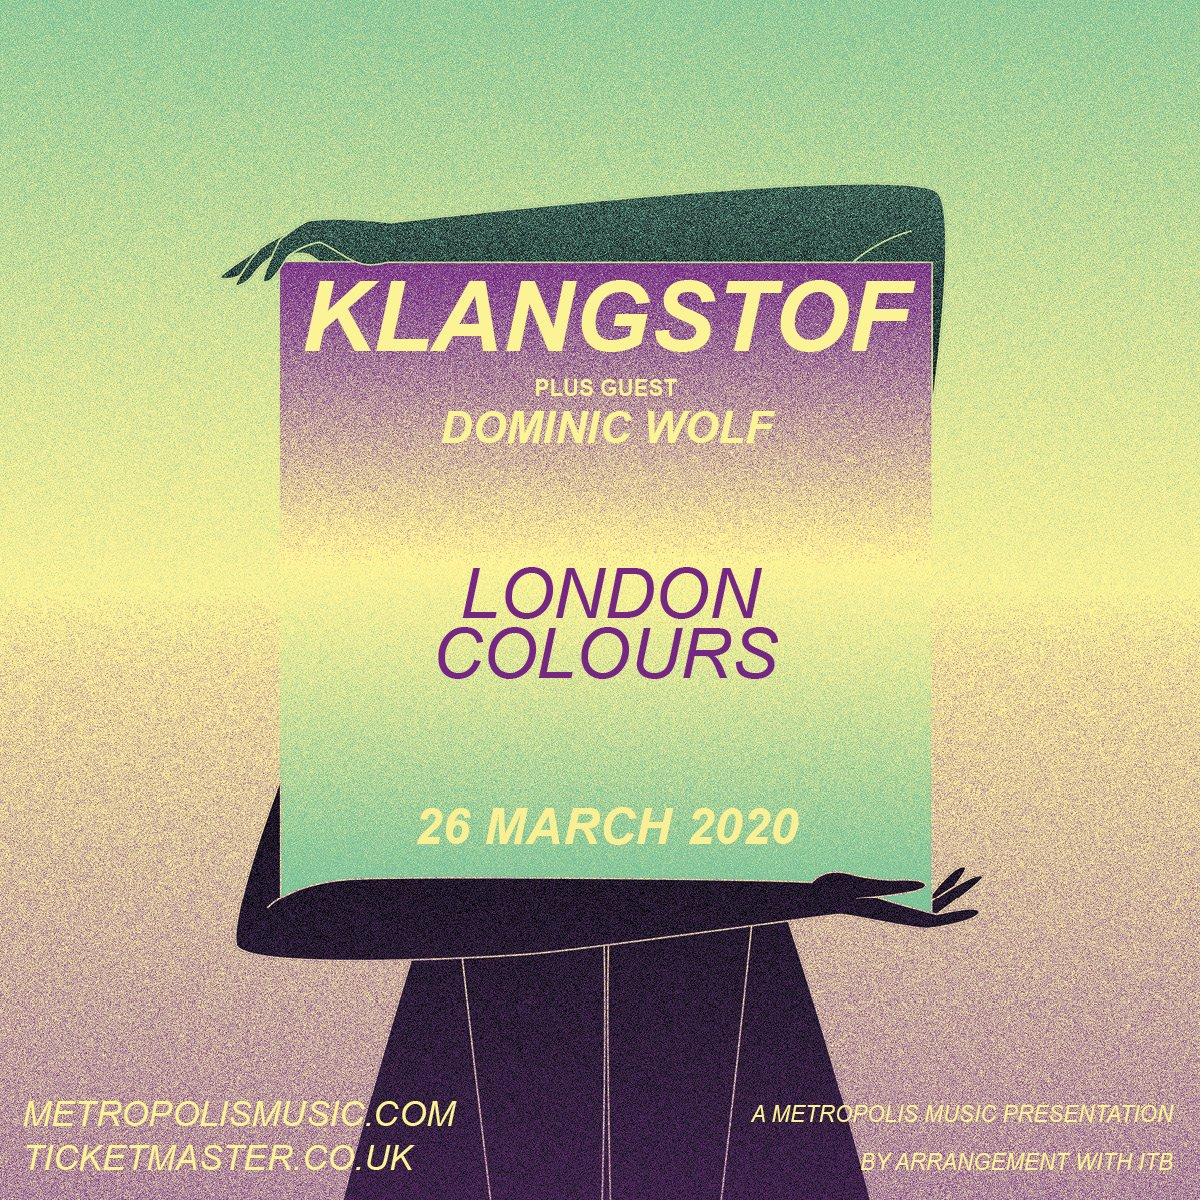 Very excited to announce that I will be supporting @klangstof at @ColoursHoxton on the 26th of March!! These guys are the real deal, can't wait for this one - it's gonna be 🔥🔥🔥 Tickets:  https://t.co/avS5541MlQ. ✌️ https://t.co/YcHHkJXswu